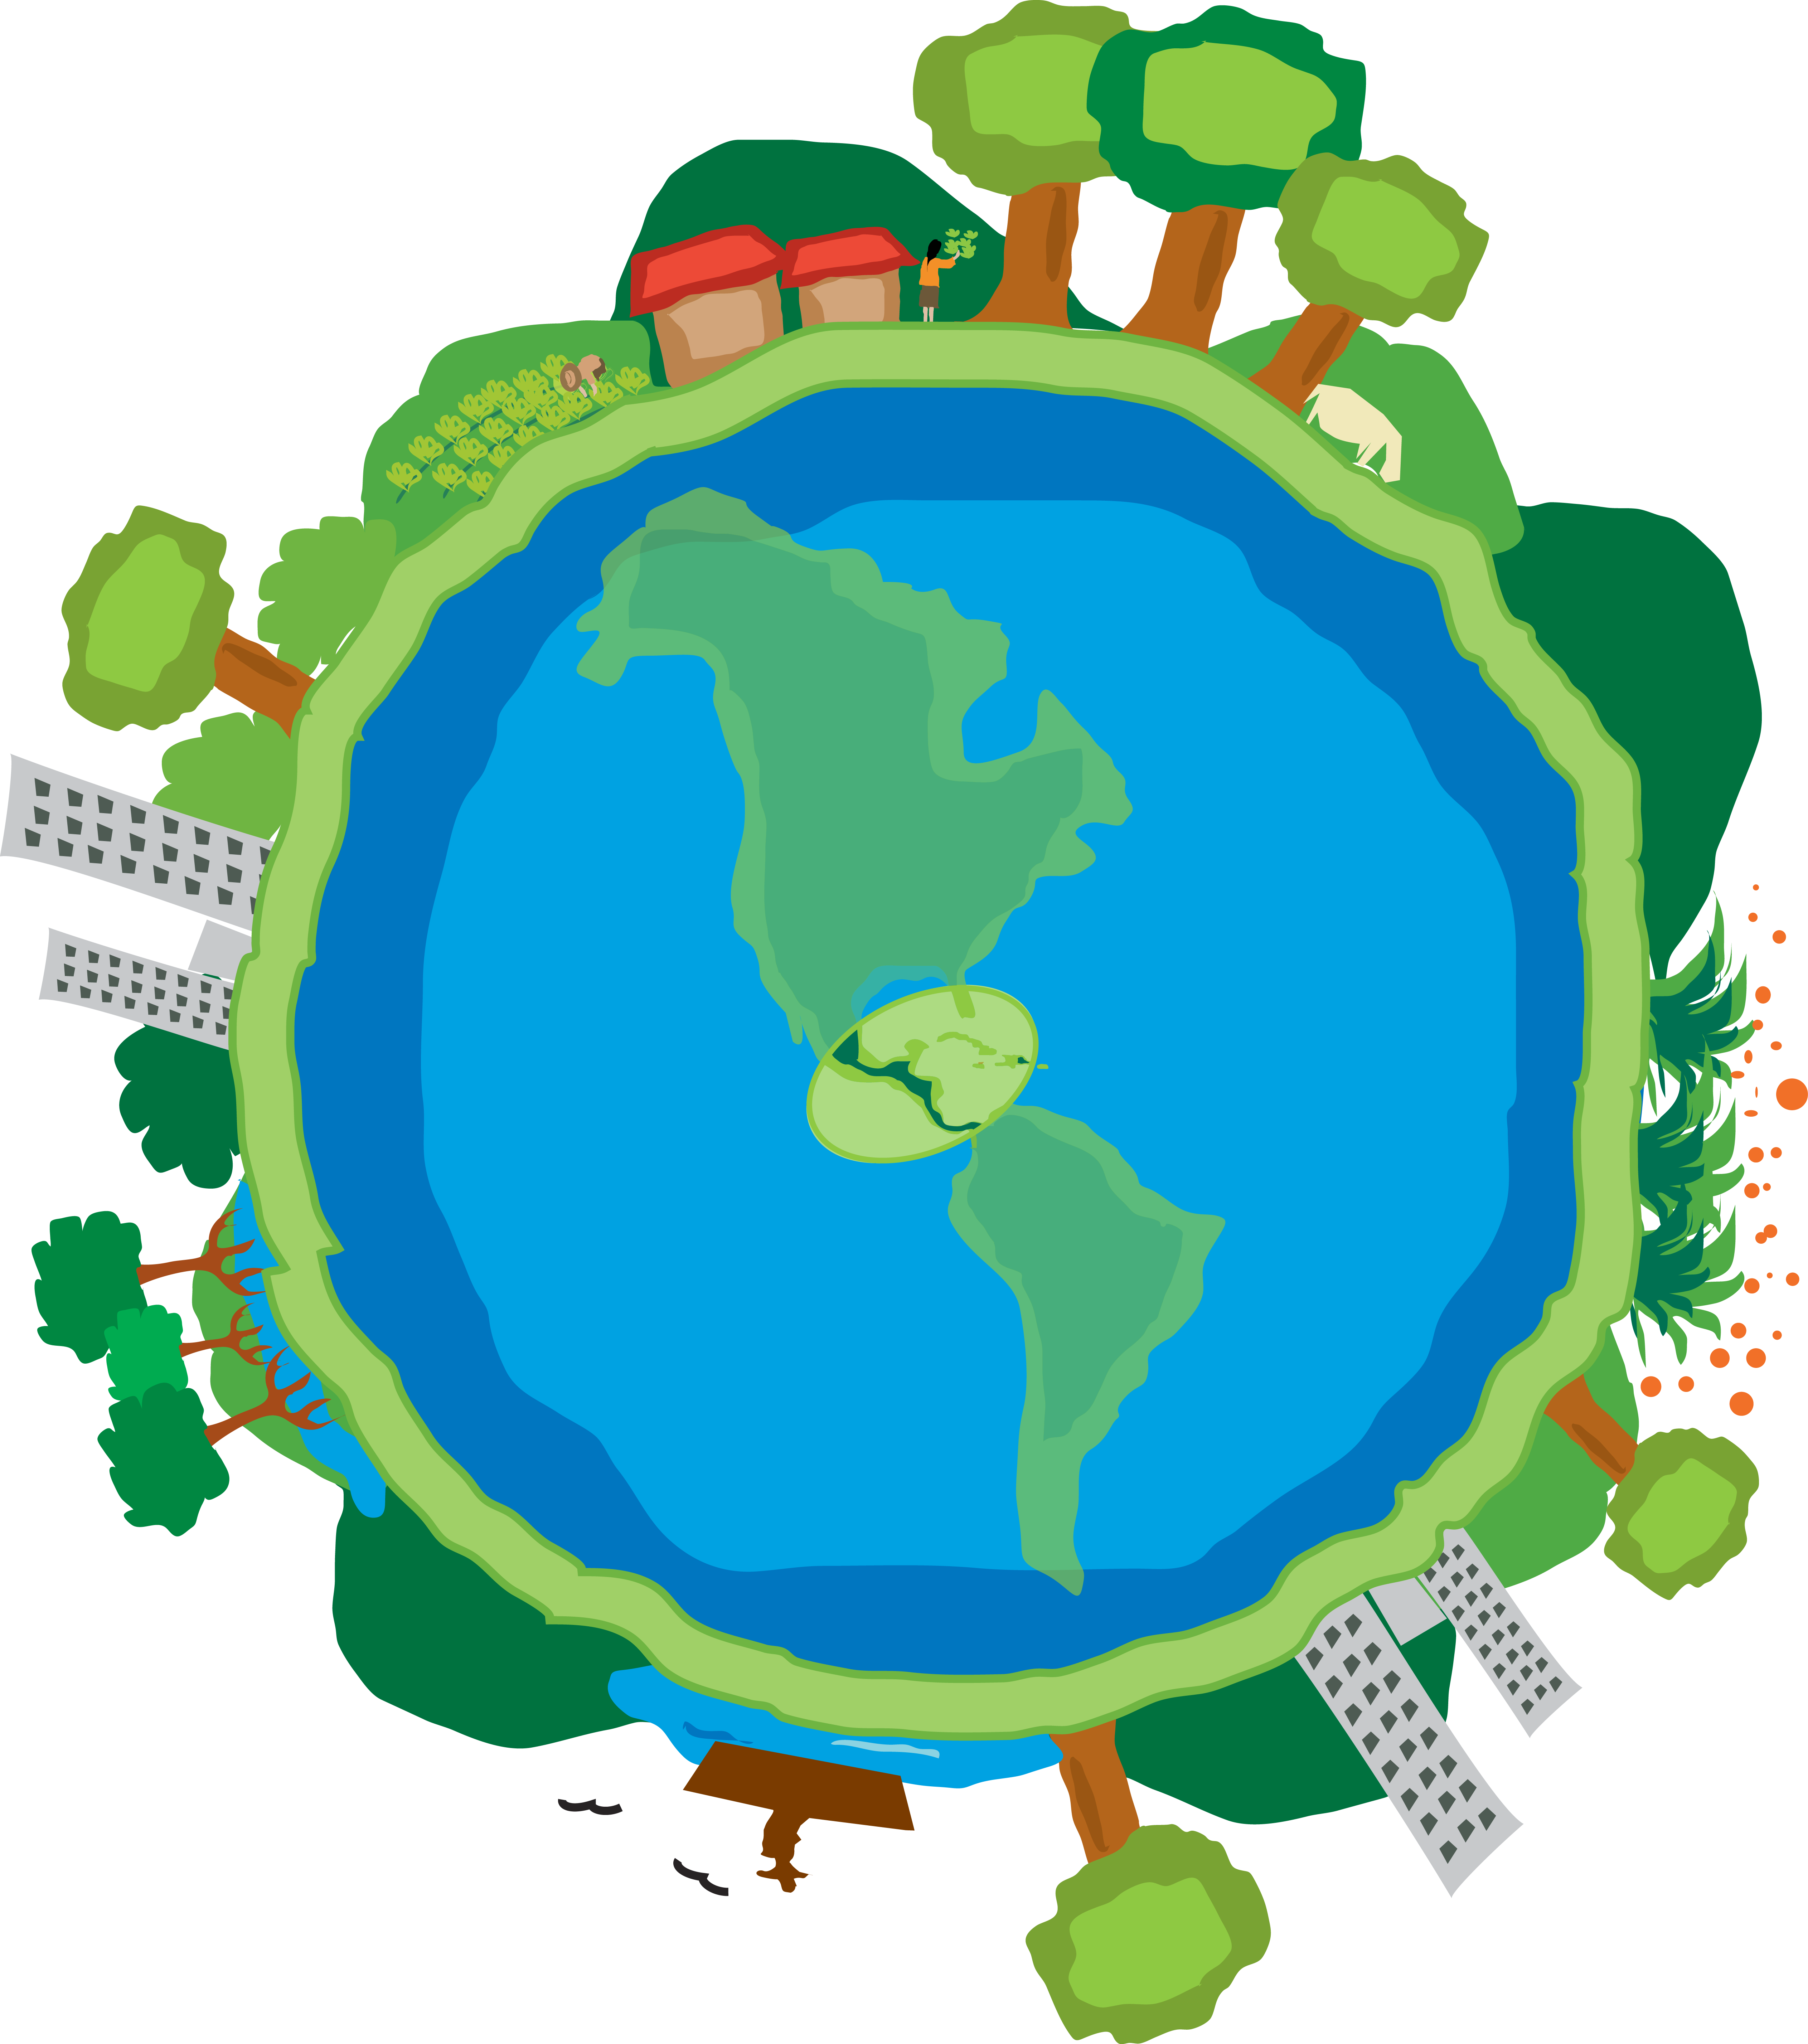 Climate drawing clipart. Change at getdrawings com